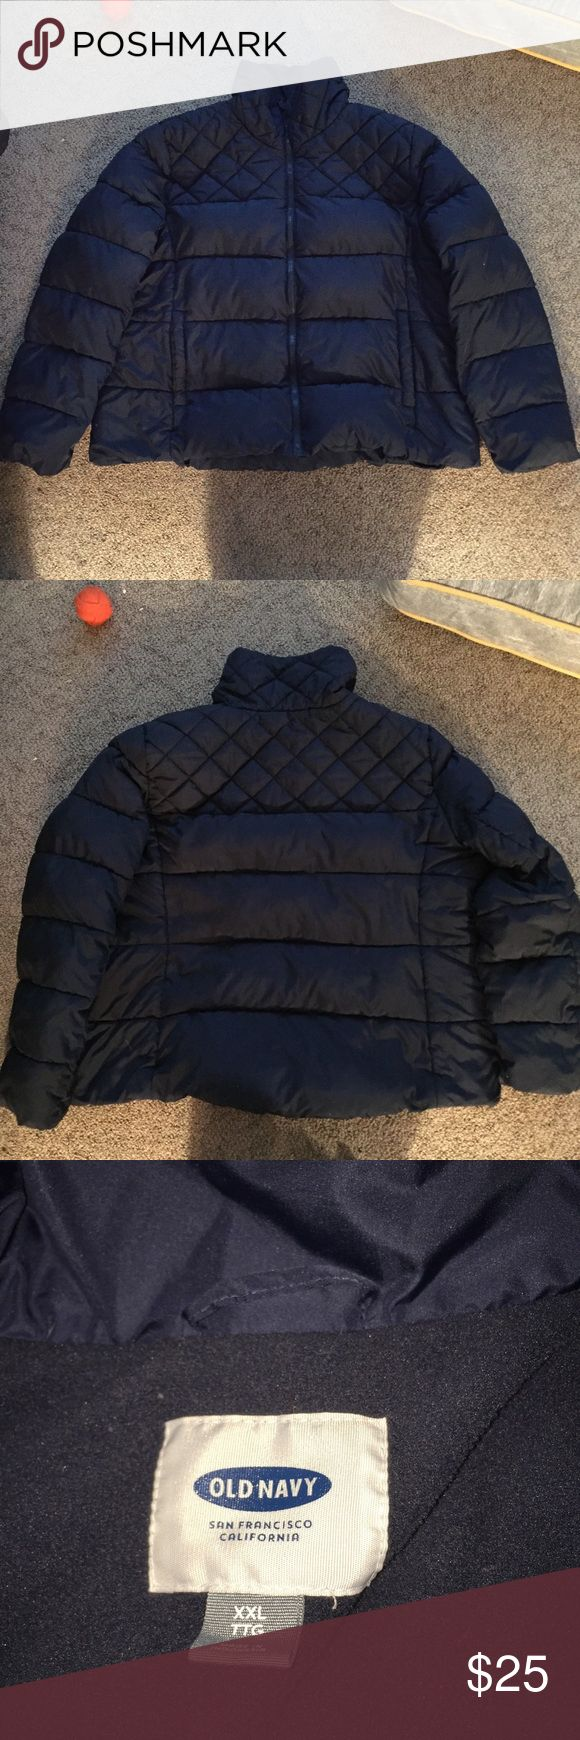 Old Navy Women's Puffer Coat XXL Navy Like New Old Navy Women's Puffer coat in XXL Navy blue, hardly worn, in like new condition.  Very cute, just doesn't fit me. Old Navy Jackets & Coats Puffers